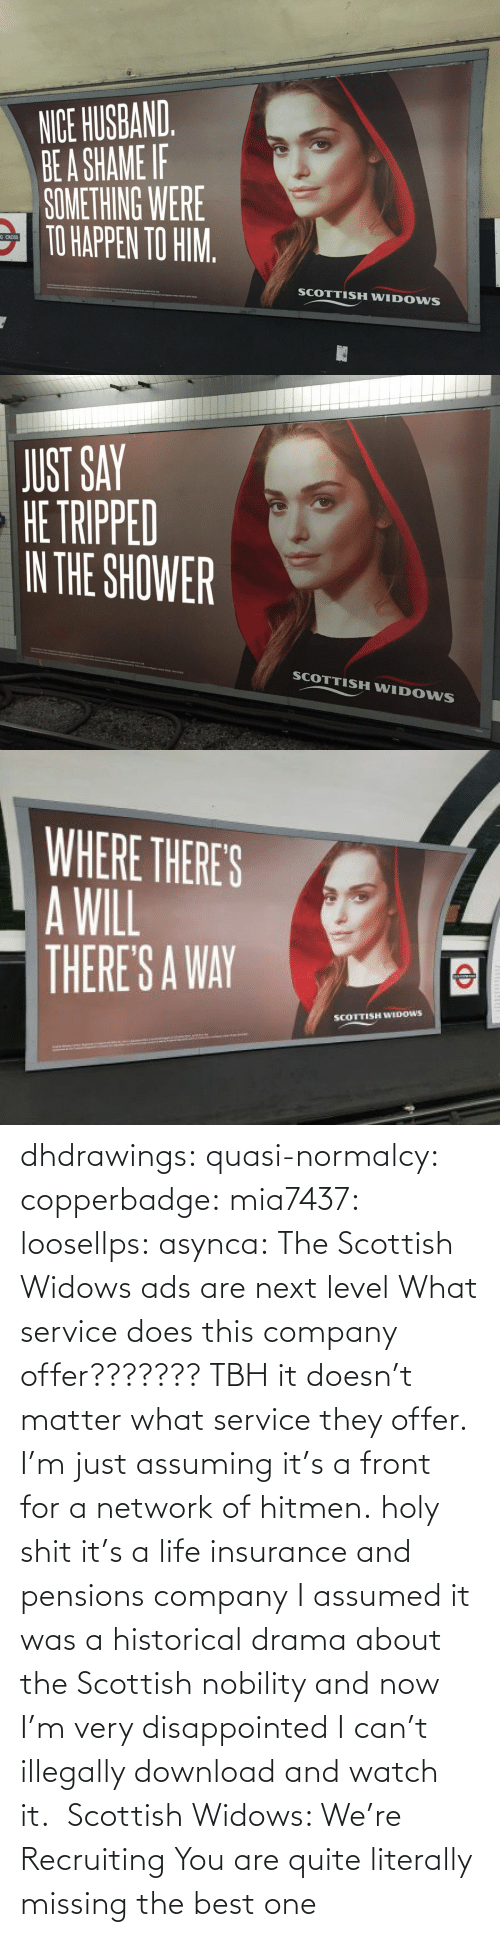 post: dhdrawings:  quasi-normalcy:  copperbadge:  mia7437:  loosellps:  asynca: The Scottish Widows ads are next level What service does this company offer??????? TBH it doesn't matter what service they offer. I'm just assuming it's a front for a network of hitmen.  holy shit it's a life insurance and pensions company  I assumed it was a historical drama about the Scottish nobility and now I'm very disappointed I can't illegally download and watch it.     Scottish Widows: We're Recruiting    You are quite literally missing the best one